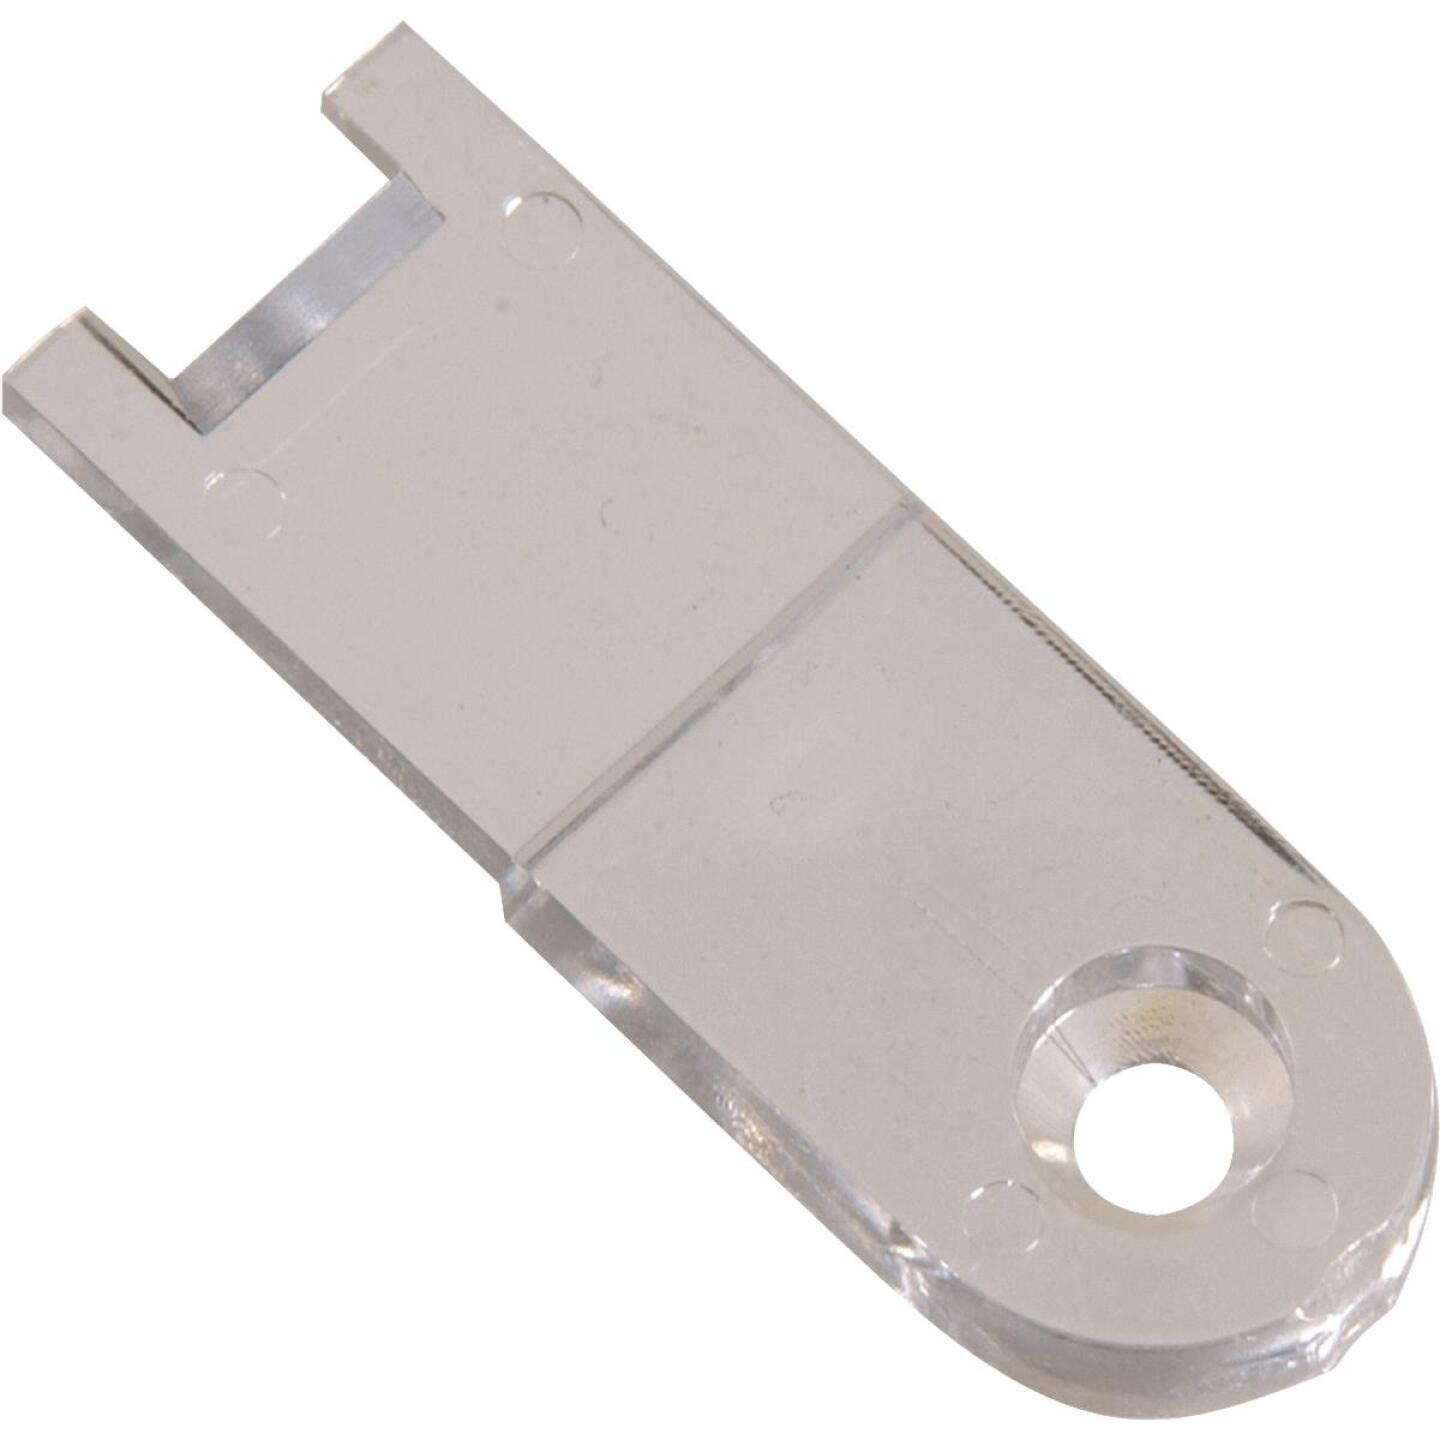 Hillman Fastener Clear Plastic Switch Lock (2-Pack) Image 1